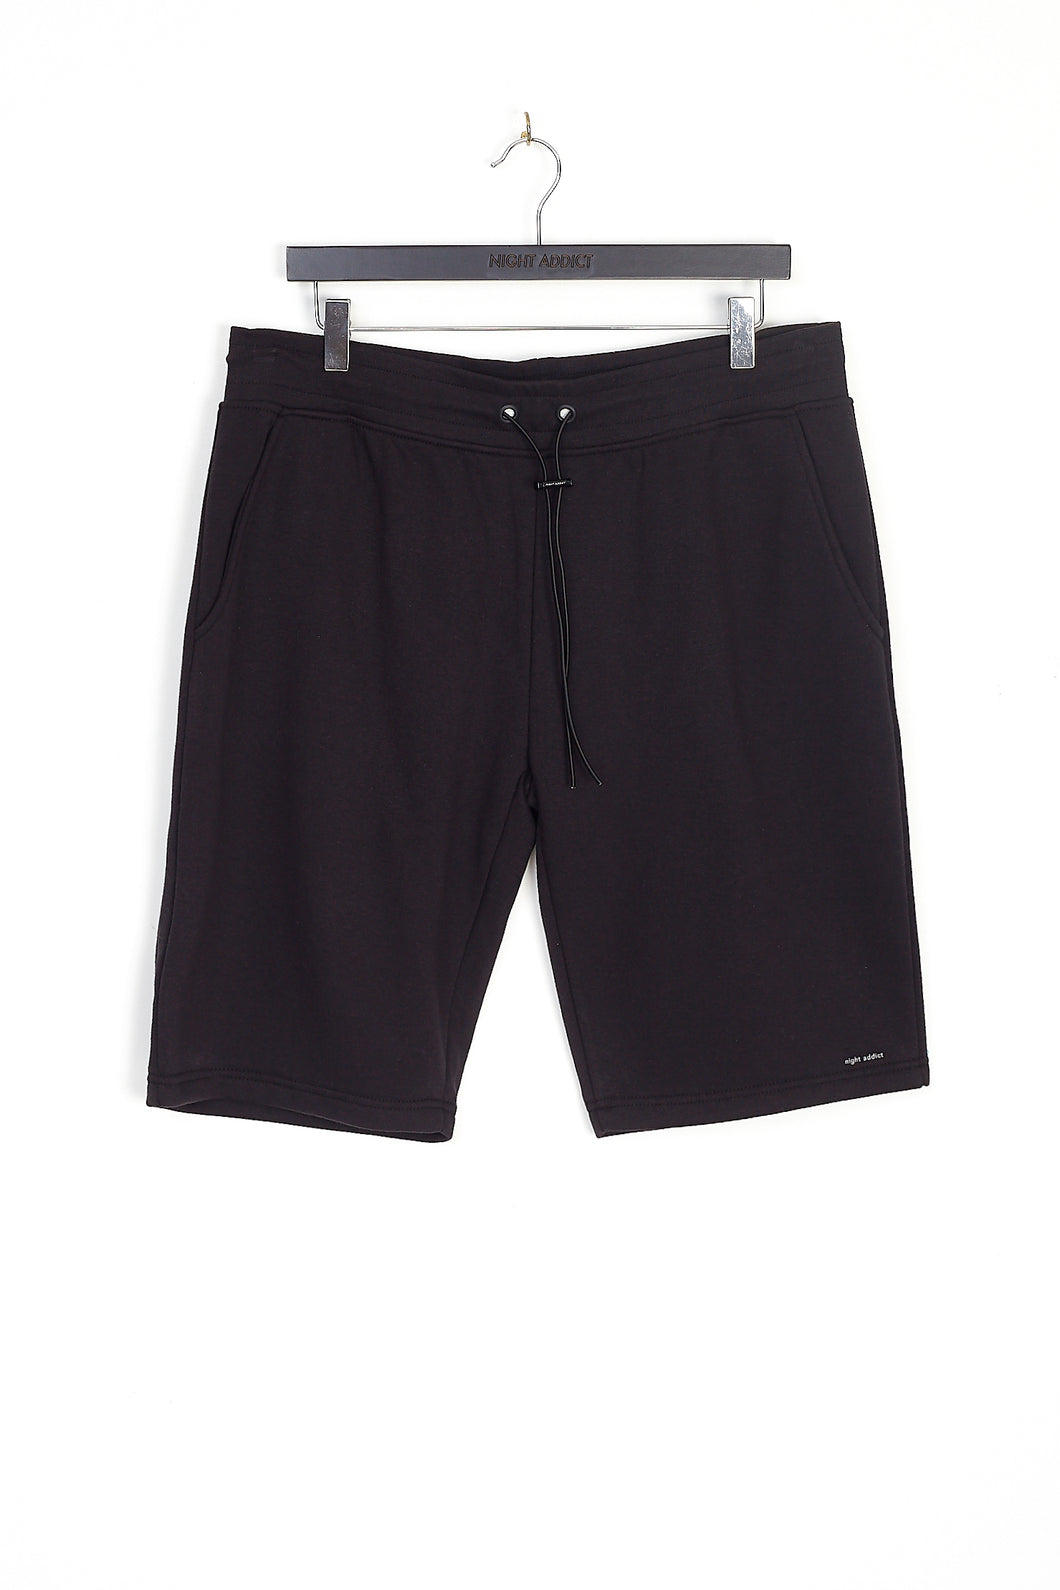 NIGHT ADDICT BLACK CORE SHORTS